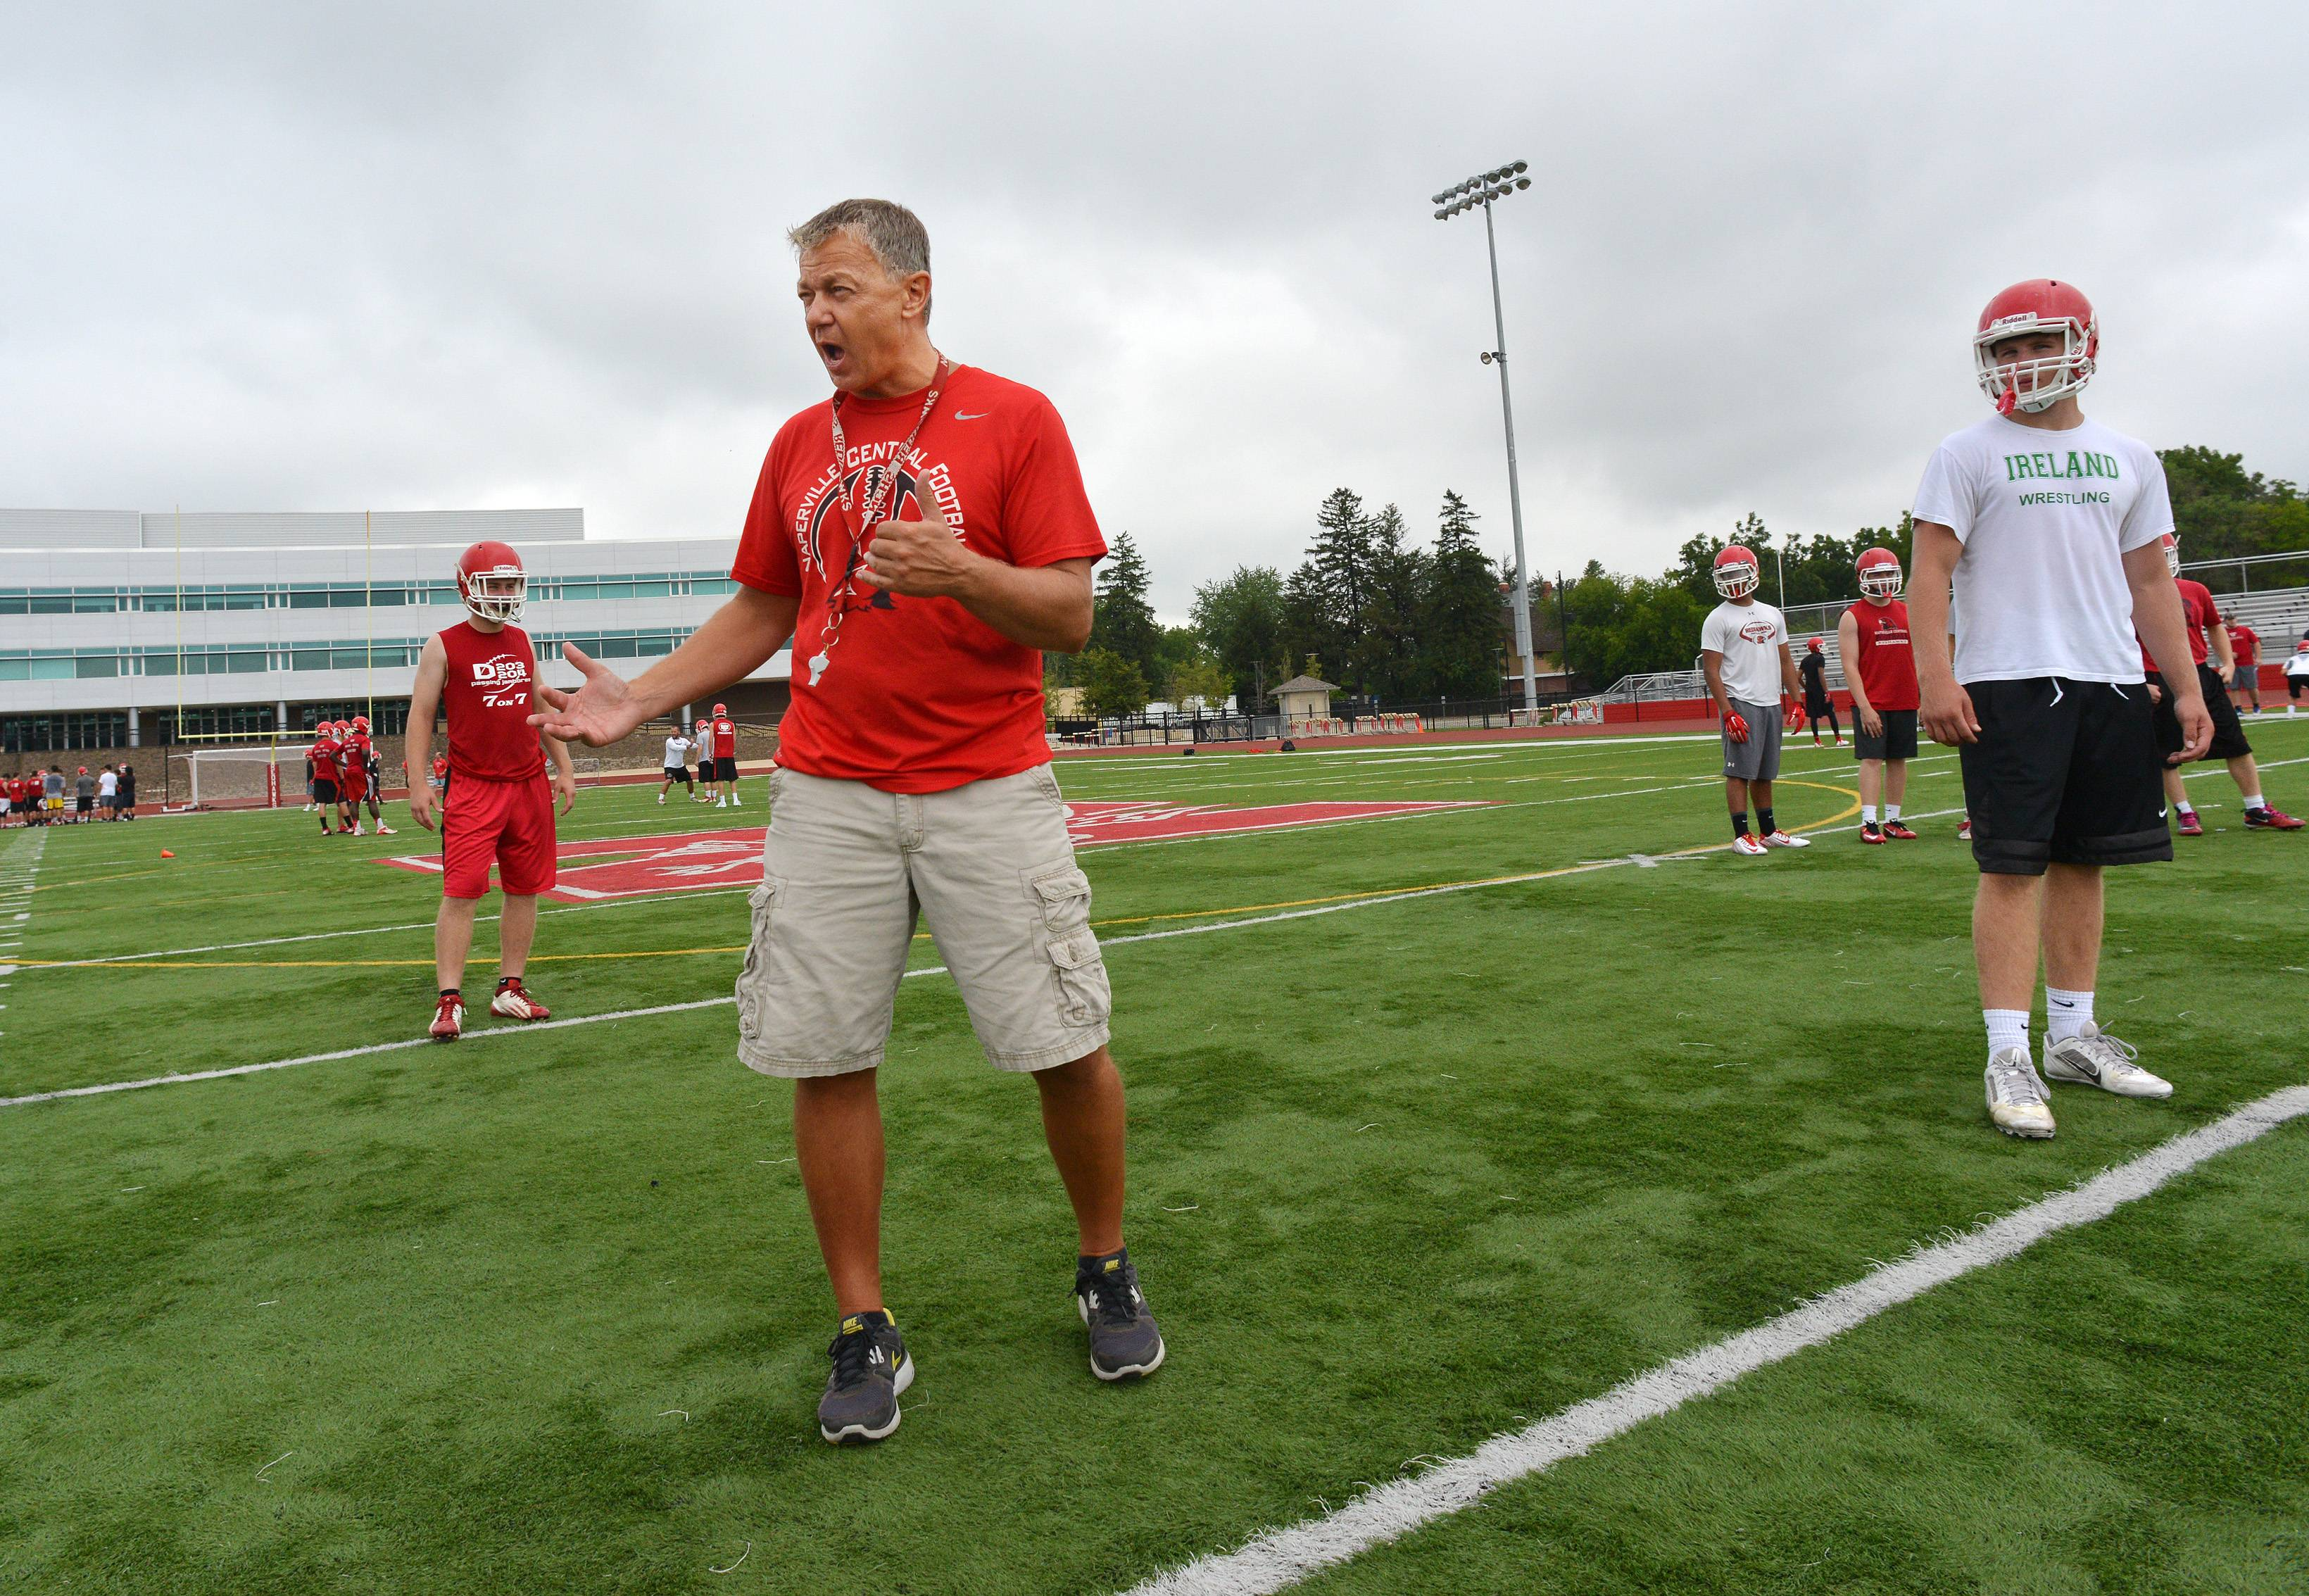 Naperville Central High School's football team works Monday out on the first official day of practice. Mike Stine shows where players are to set up.